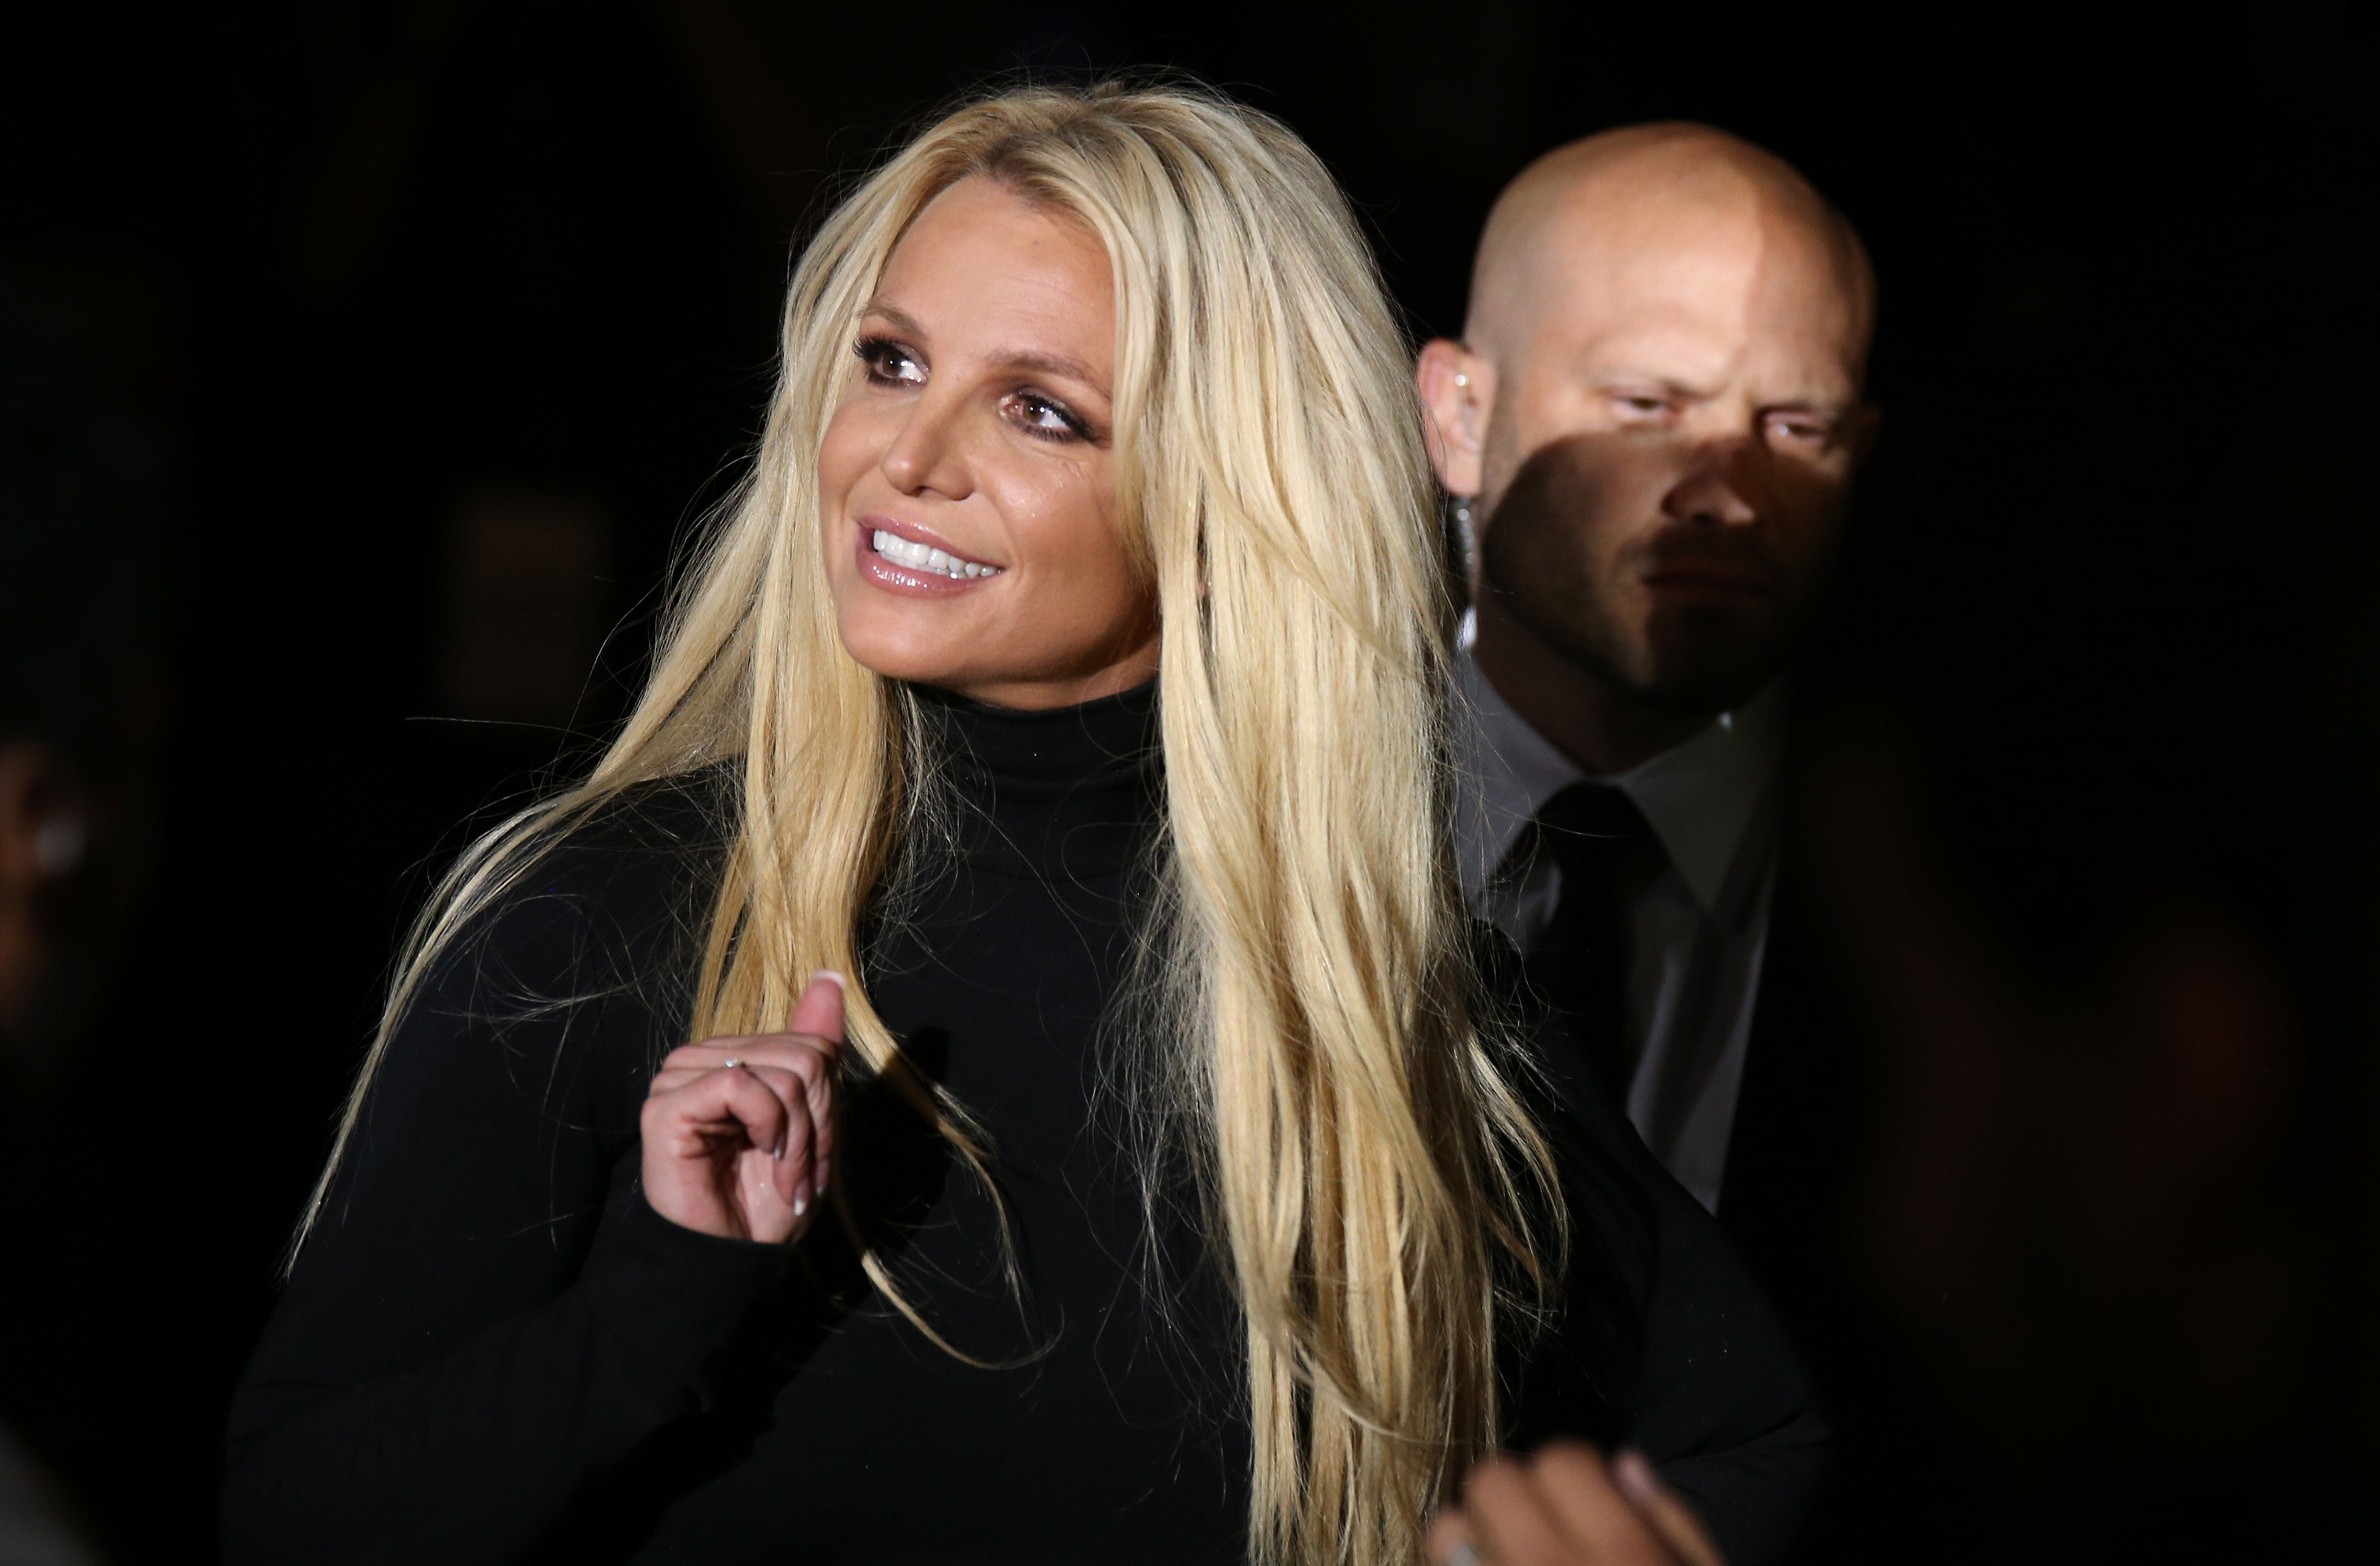 Britney smiles and waves at an event